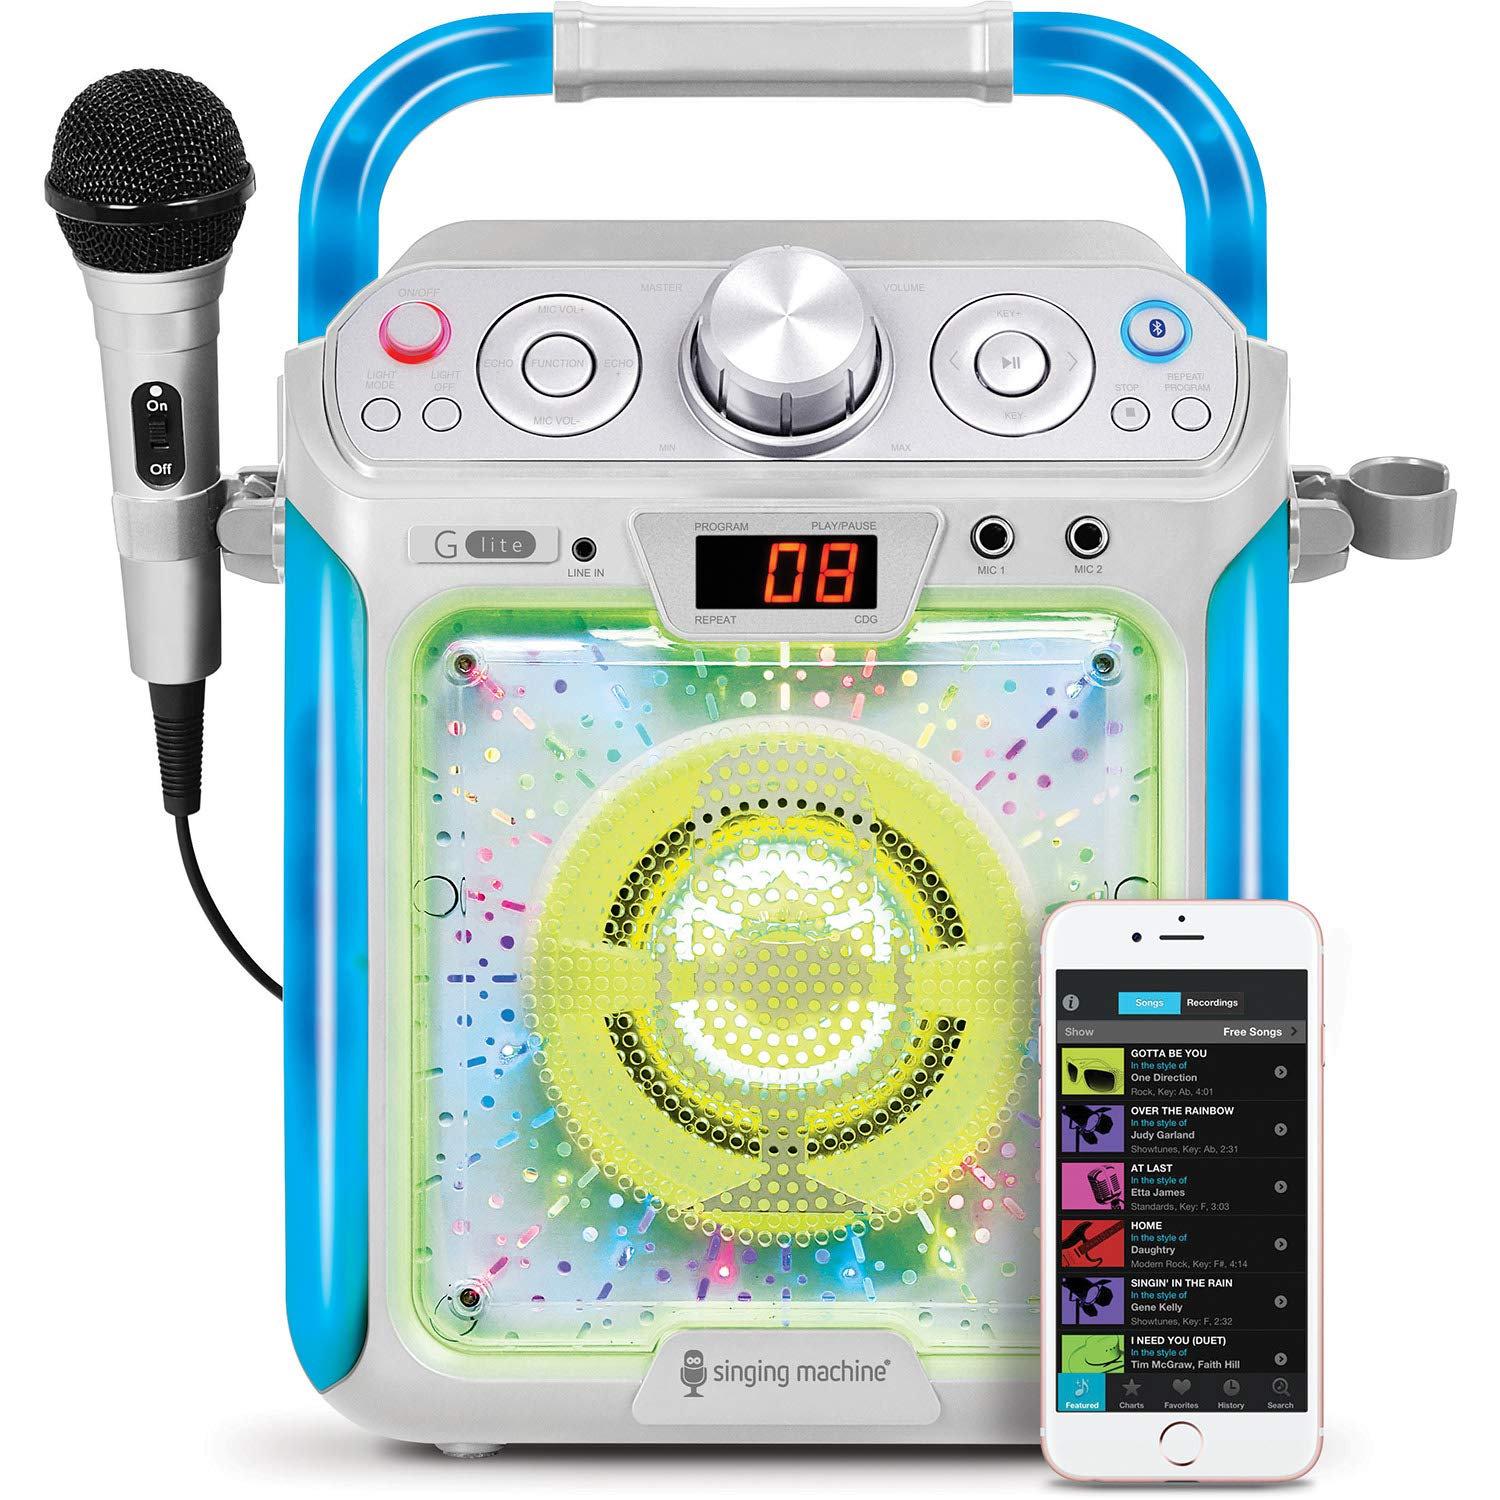 Singing Machine SML2082 Bluetooth G-Lite CD+G Karaoke System with Microphone - Silver